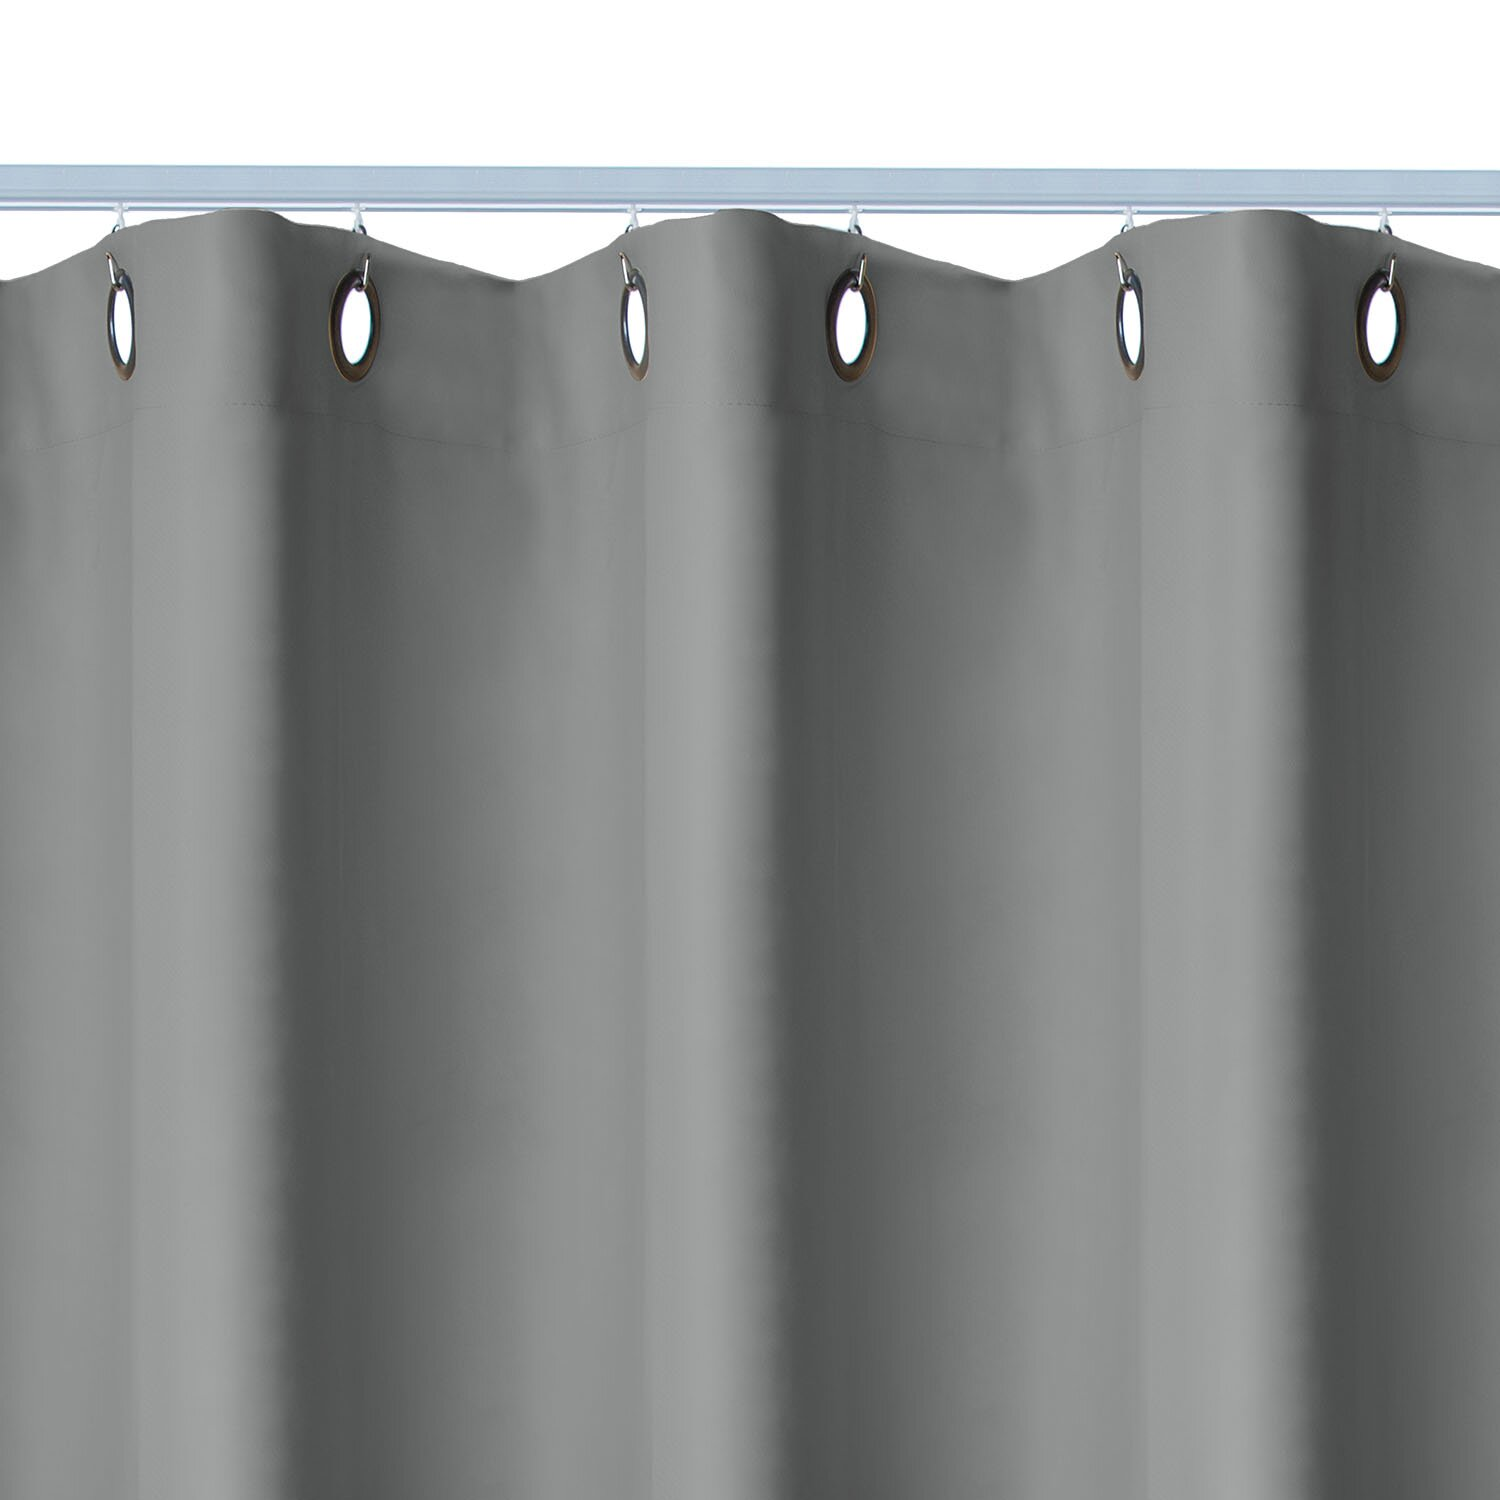 Curtain room dividers track - Premium Heavyweight Ceiling Track Room Divider Kit